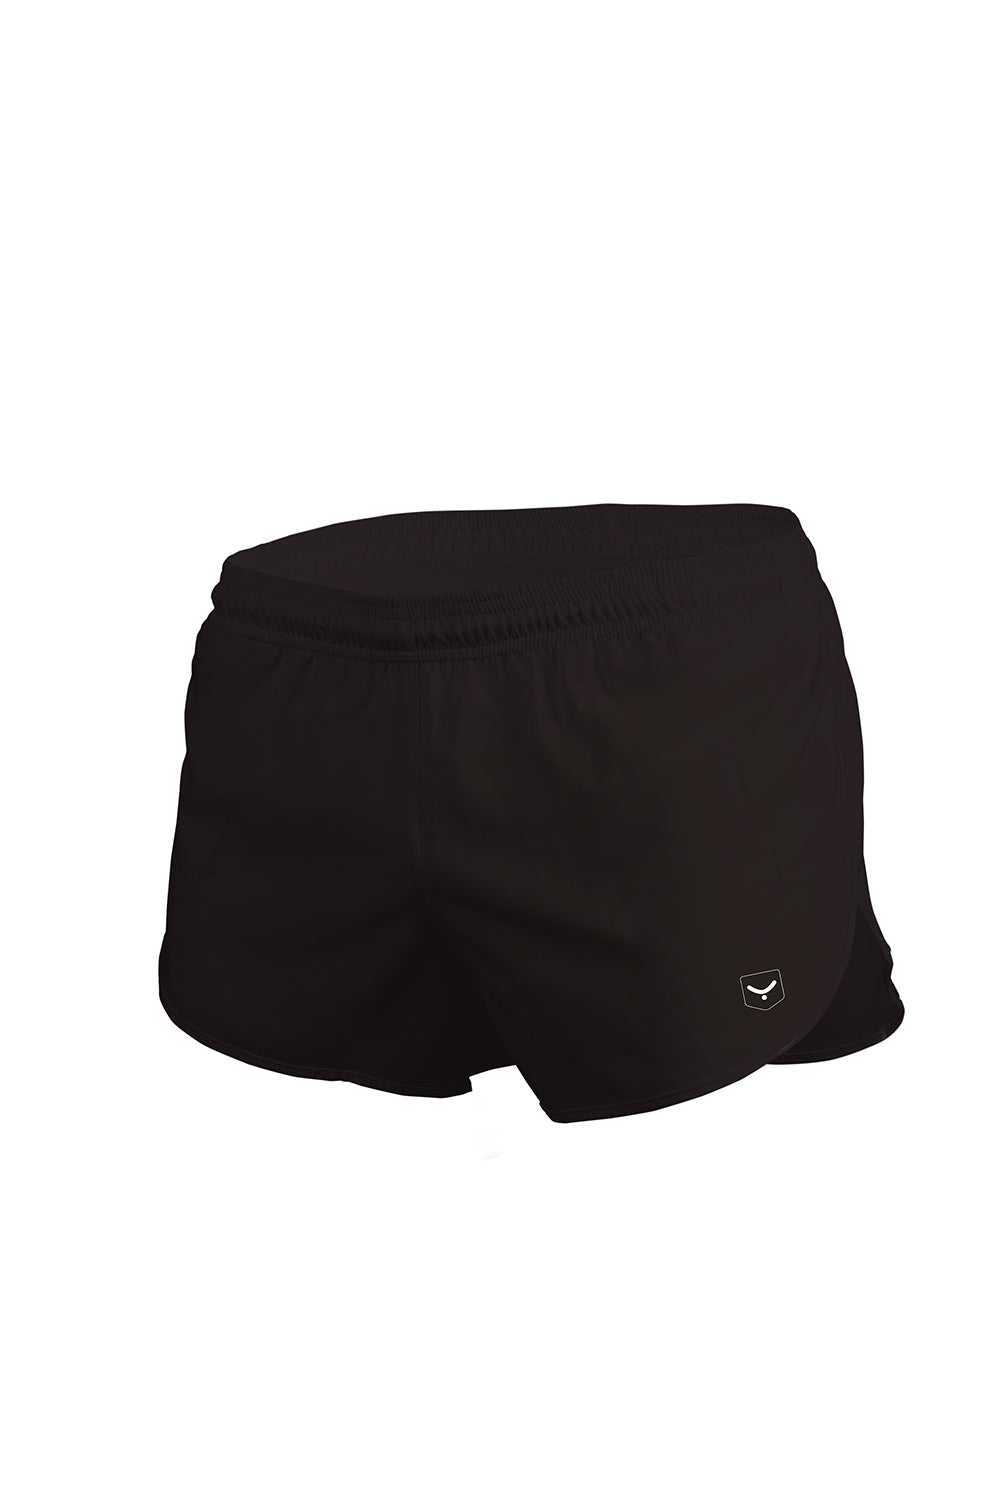 R50 Shorts Corto Running (BLACK 2019) - Taymory 2019 - REJOVI